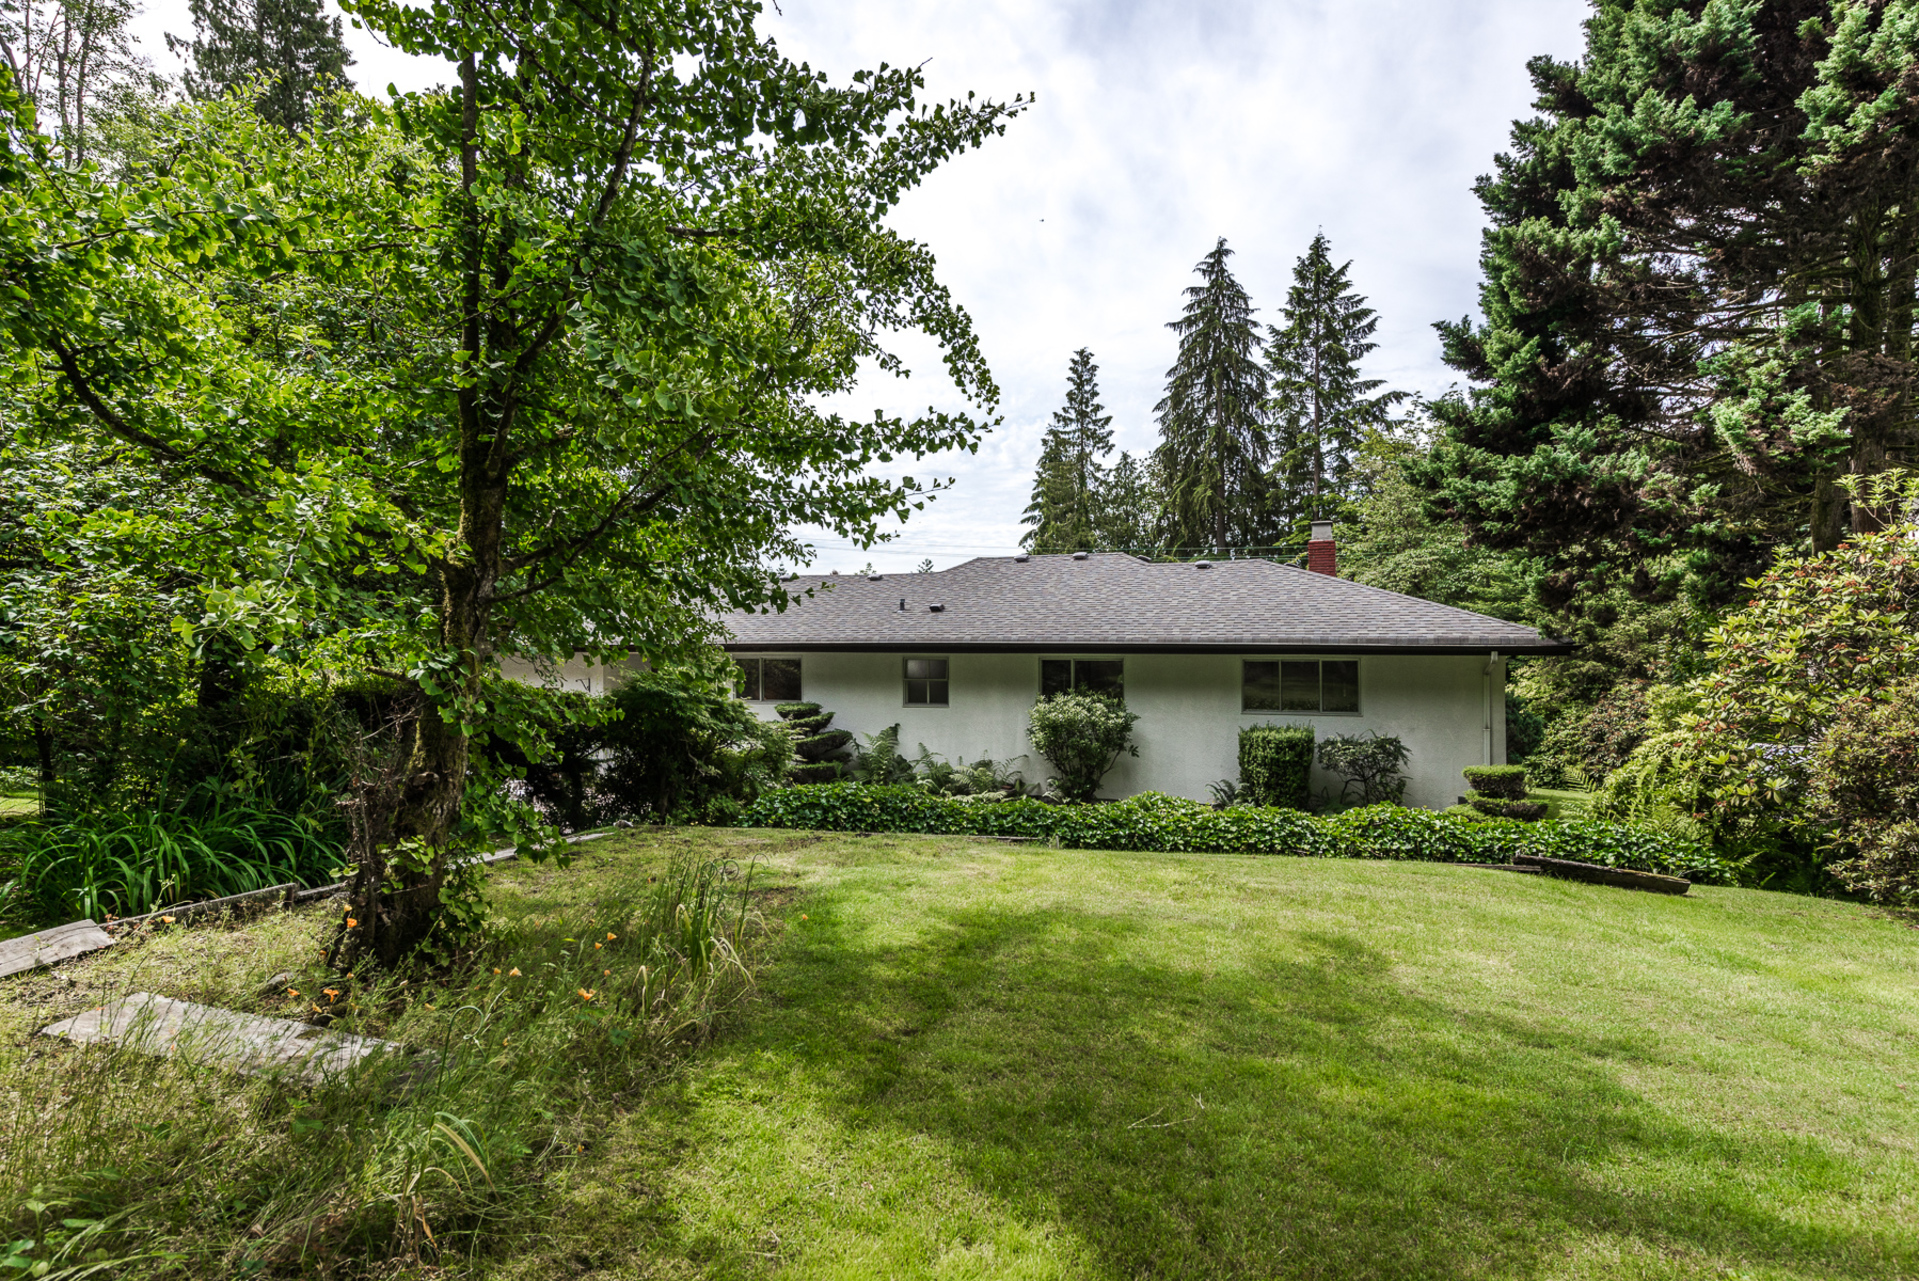 1395-Ioco-Road-Port-Moody-360hometours-17s at 1395 Ioco Road, Barber Street, Port Moody